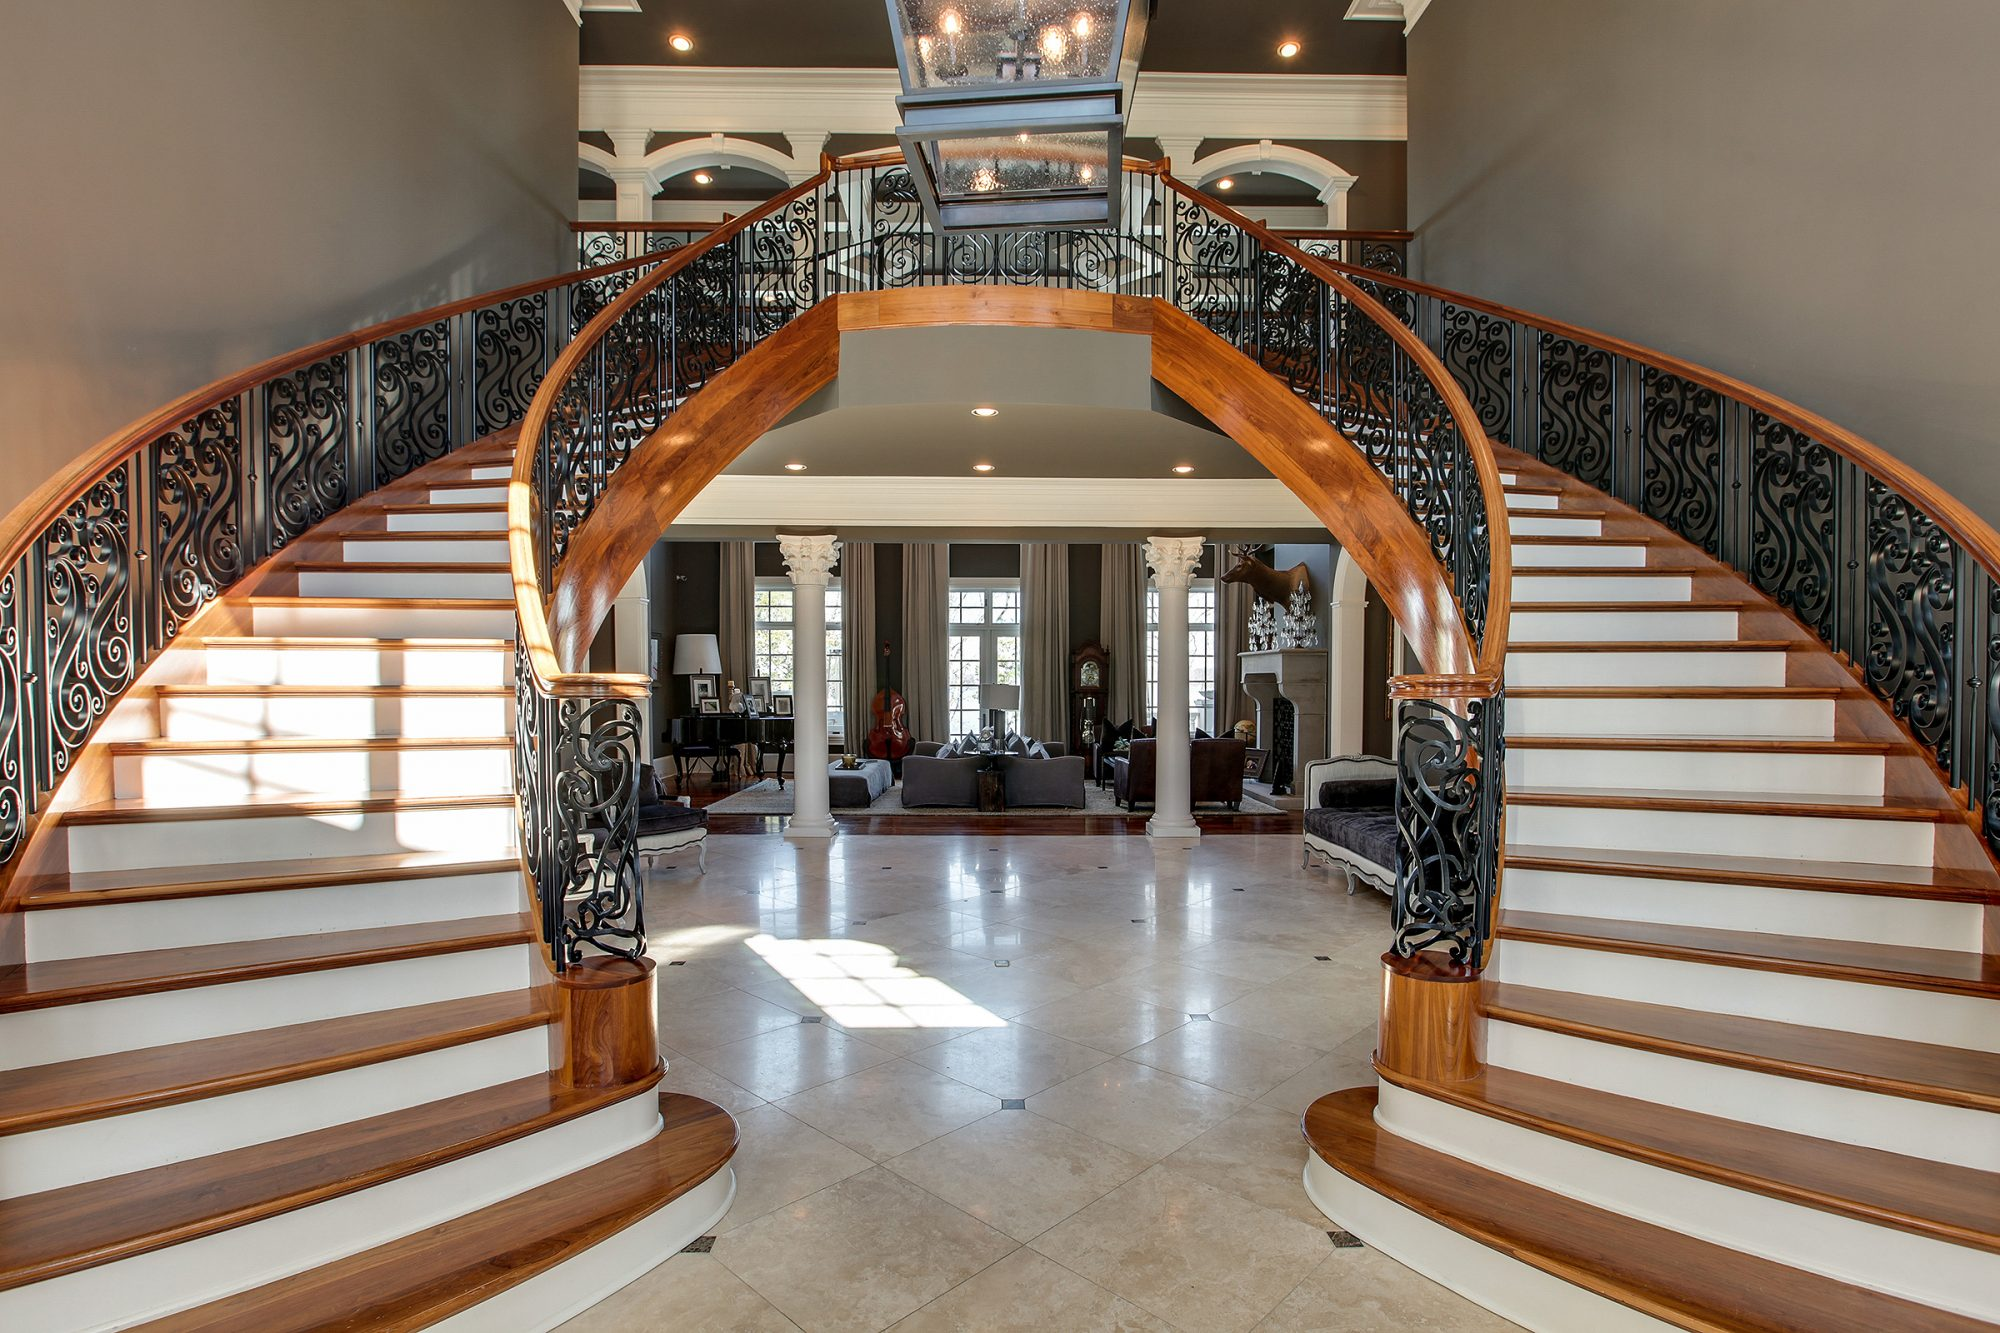 Kelly Clarkson's Tennessee Lake Mansion